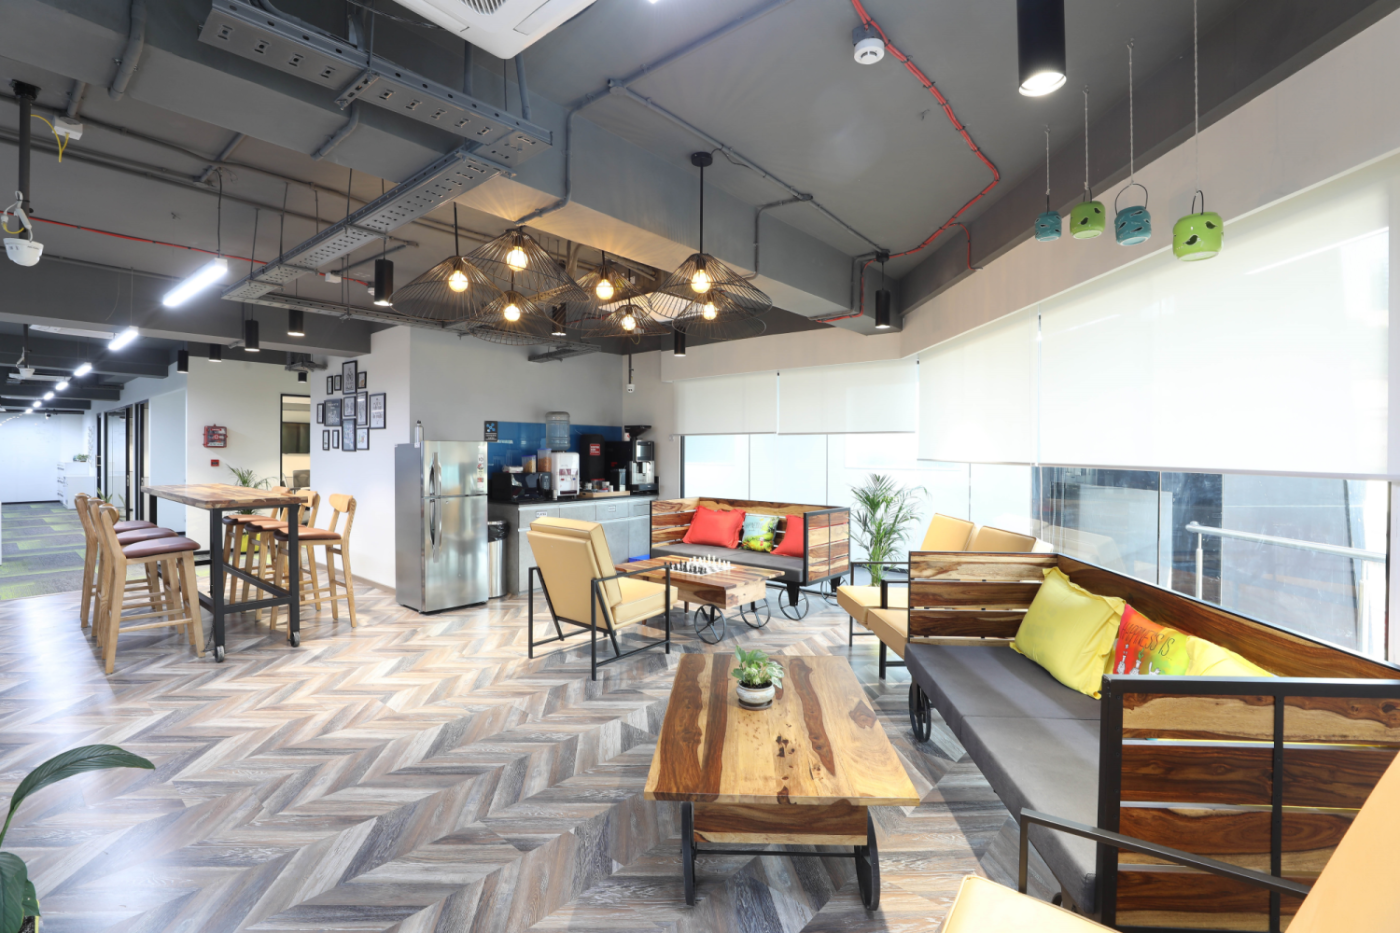 Awfis opens 63,000 sq feet co-working space in Bengaluru